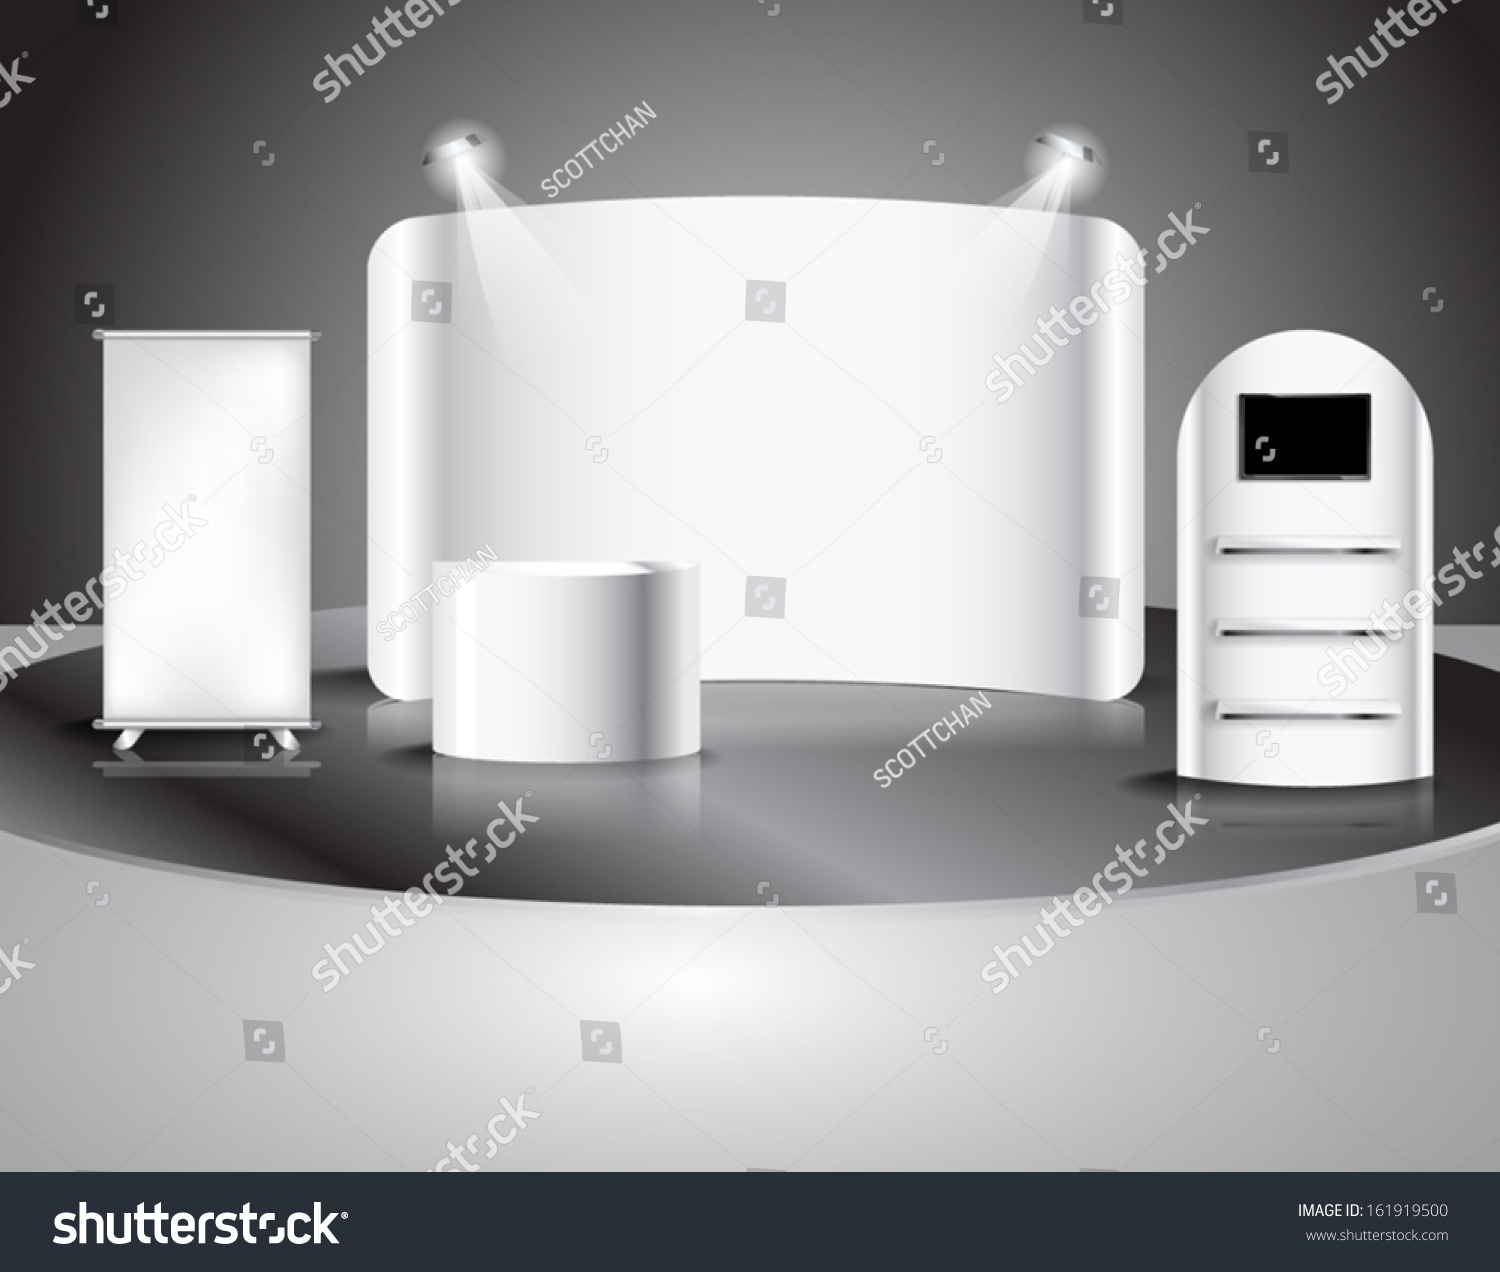 Exhibition Booth Vector : Blank trade show booth illustration vector stock